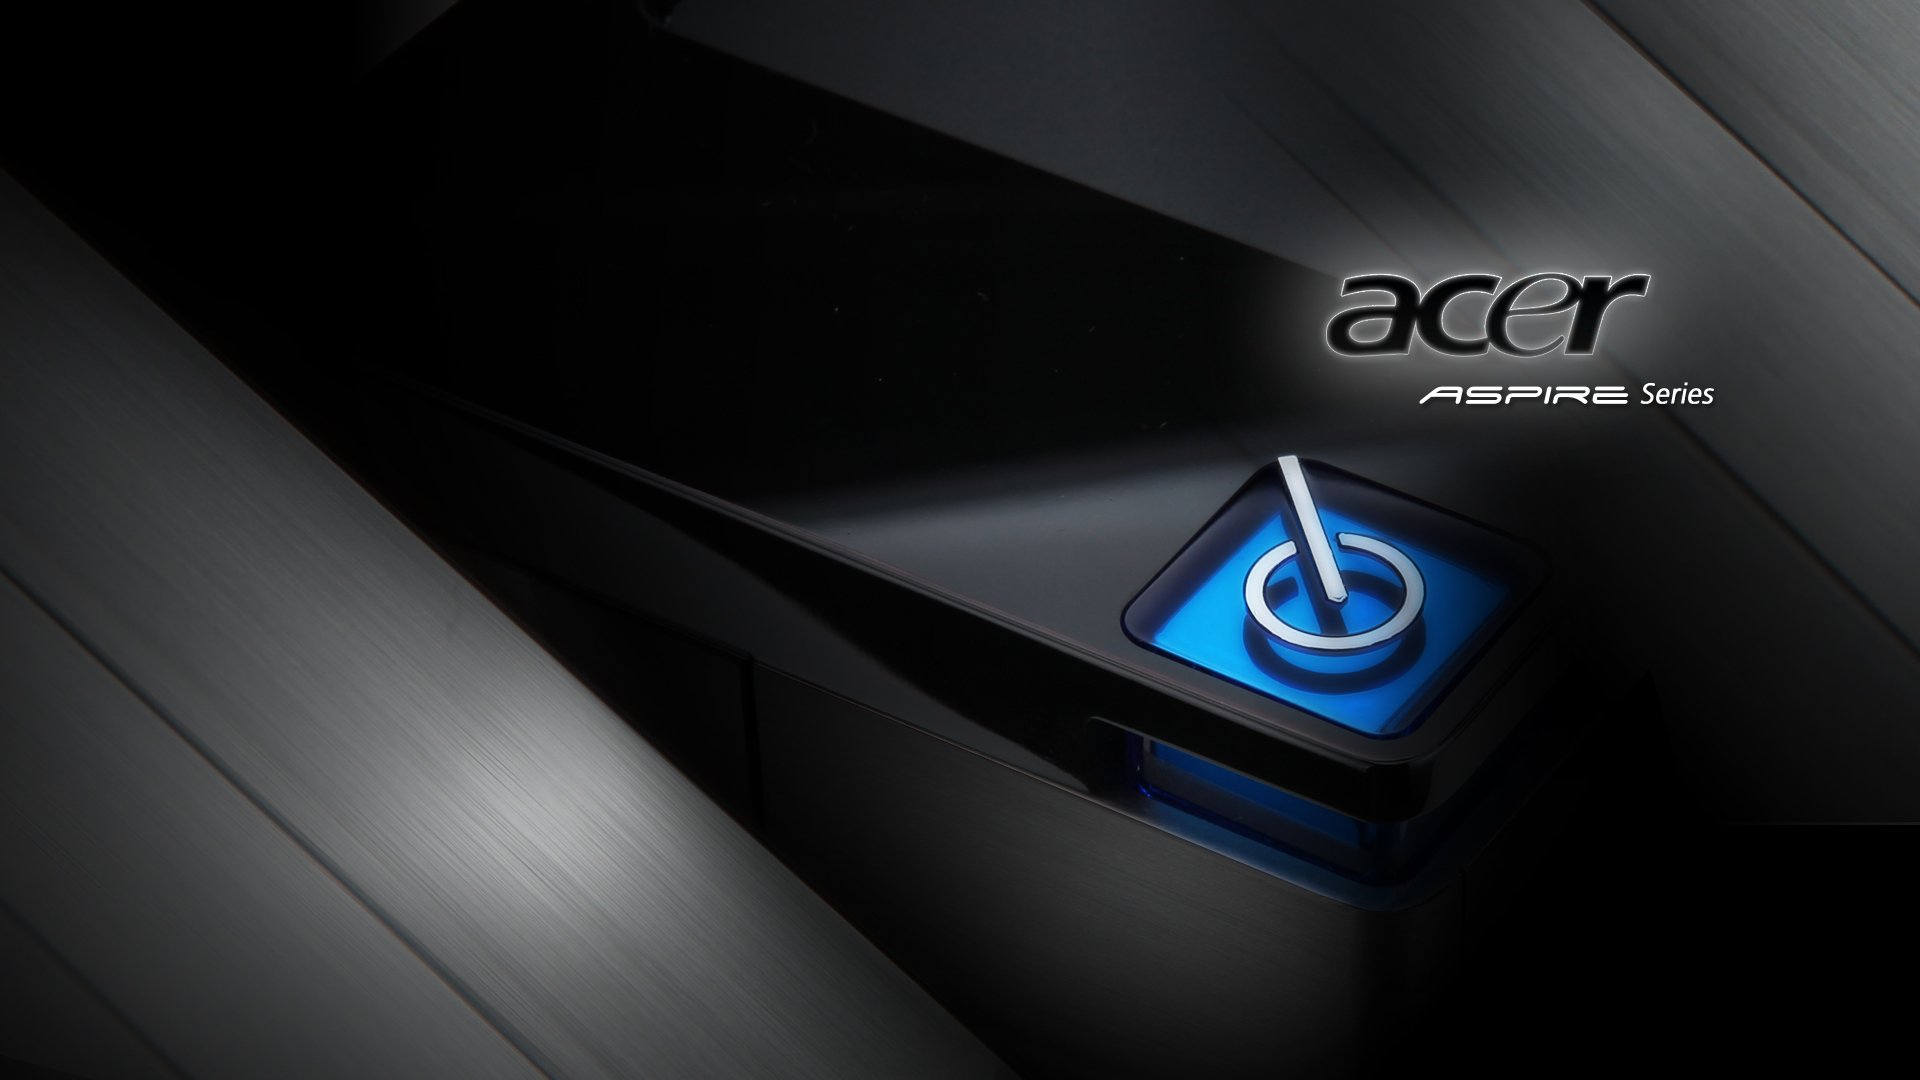 1920x1080 Acer Aspire Blue Desktop Pc And Mac Wallpaper